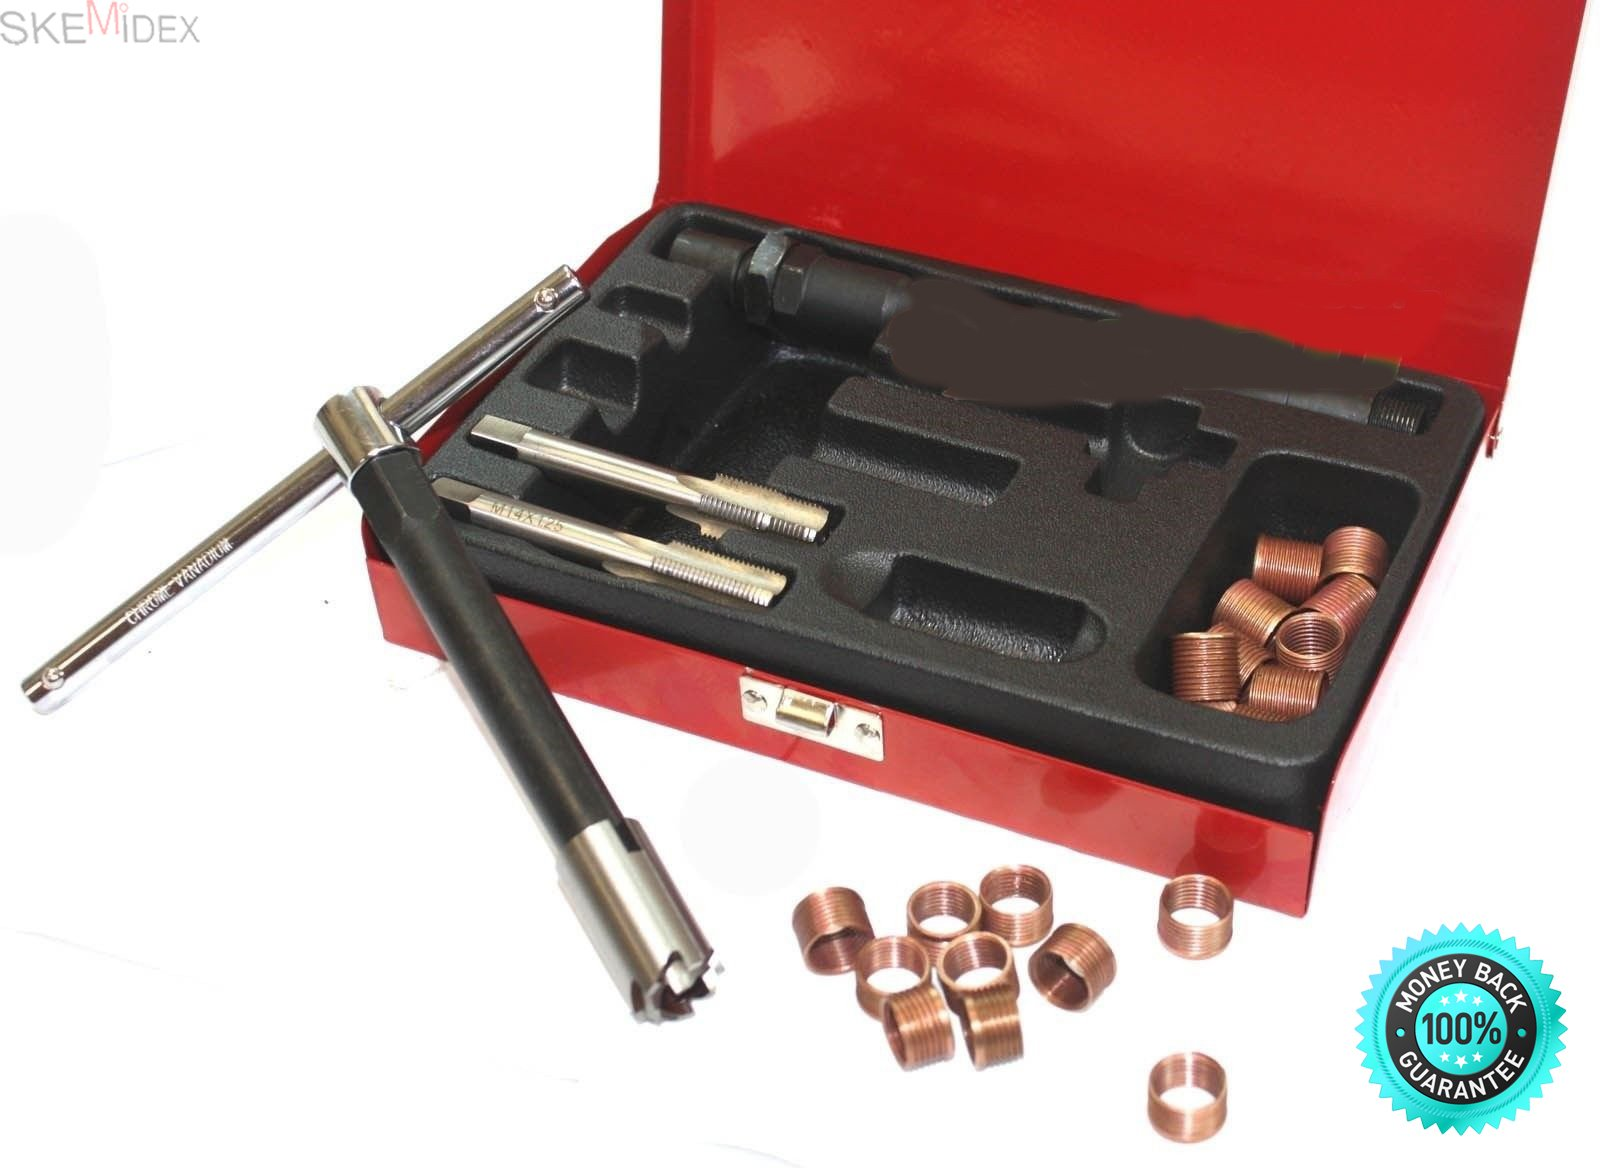 SKEMiDEX---26pc Spark Plug Thread Repair Kit M14 x 1.25 w/ Metal Case. Tap Ensures Correct Alignment of Cutter In Existing Spark Plug Hole Extension Tools